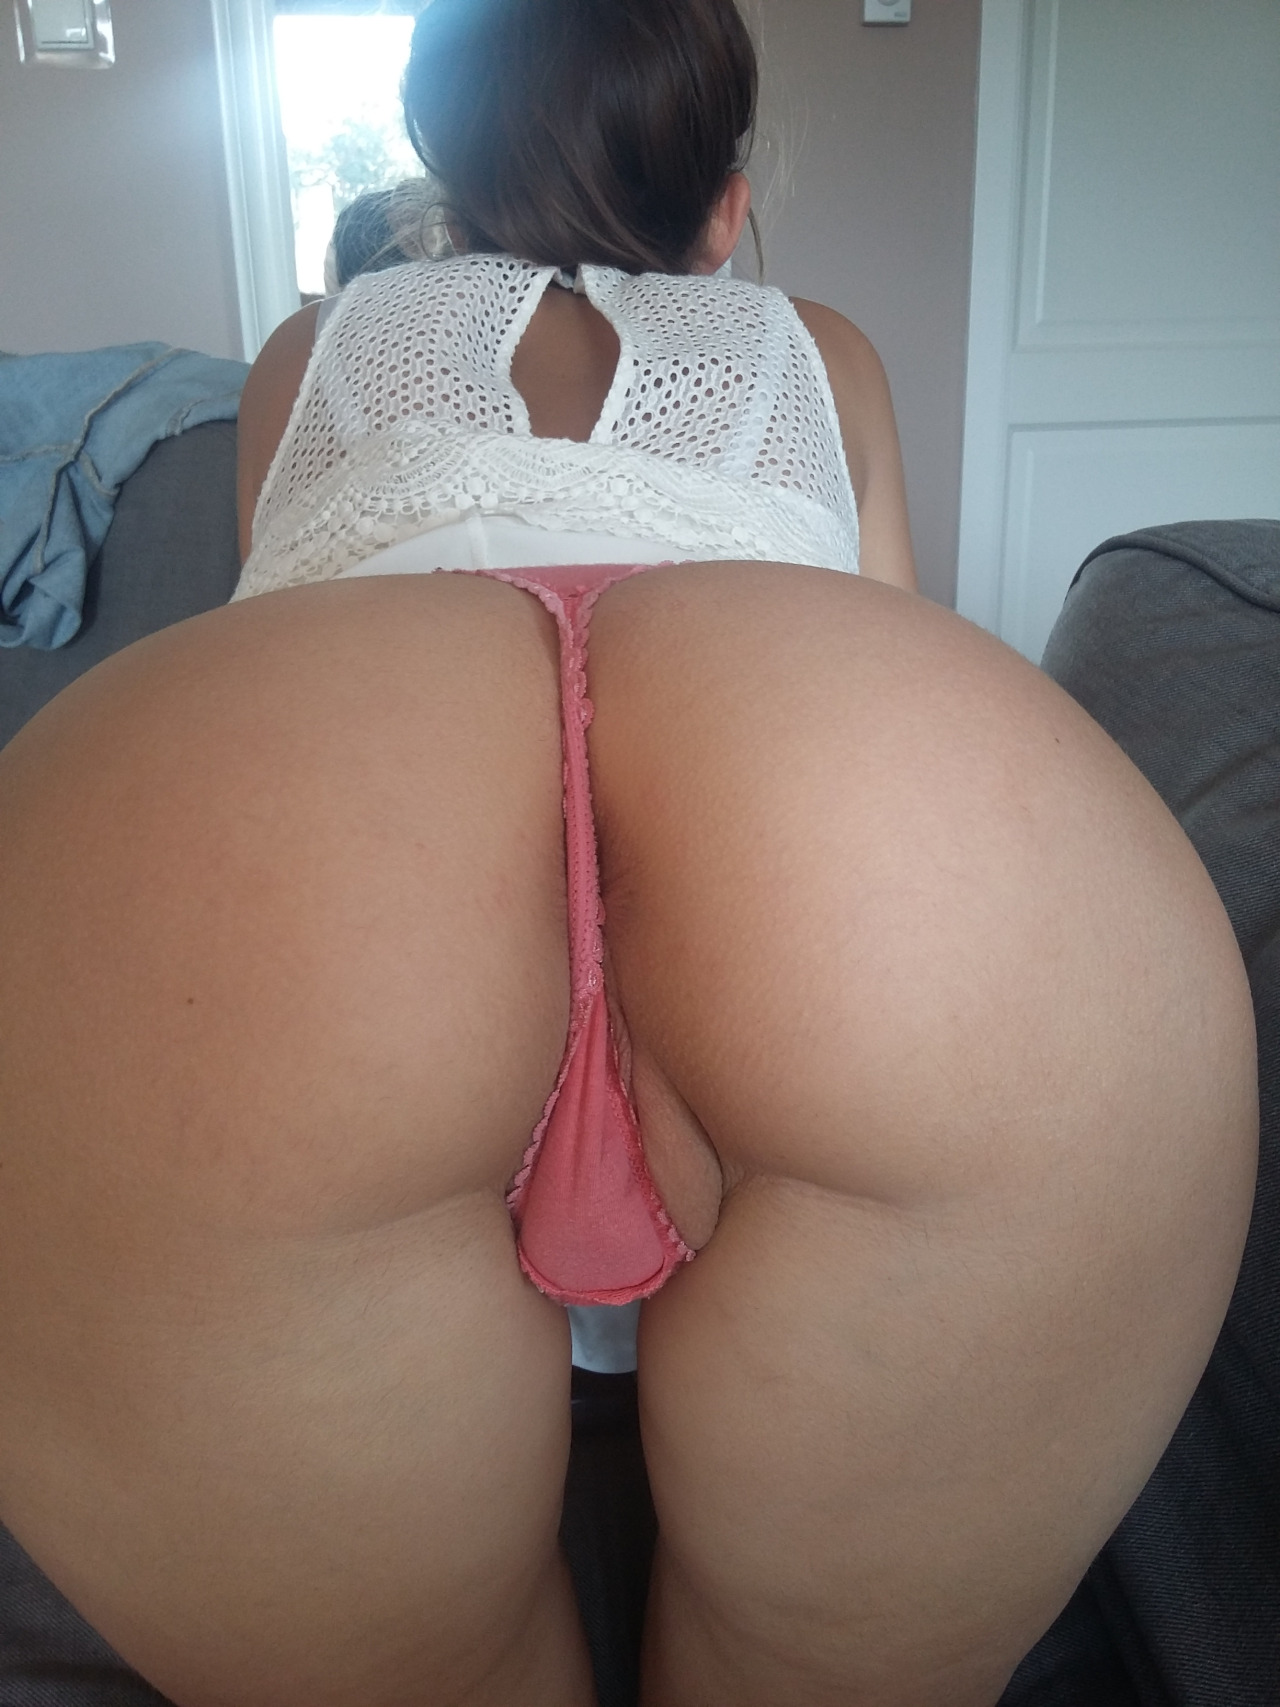 All became Amateur flash pussy in thong accept